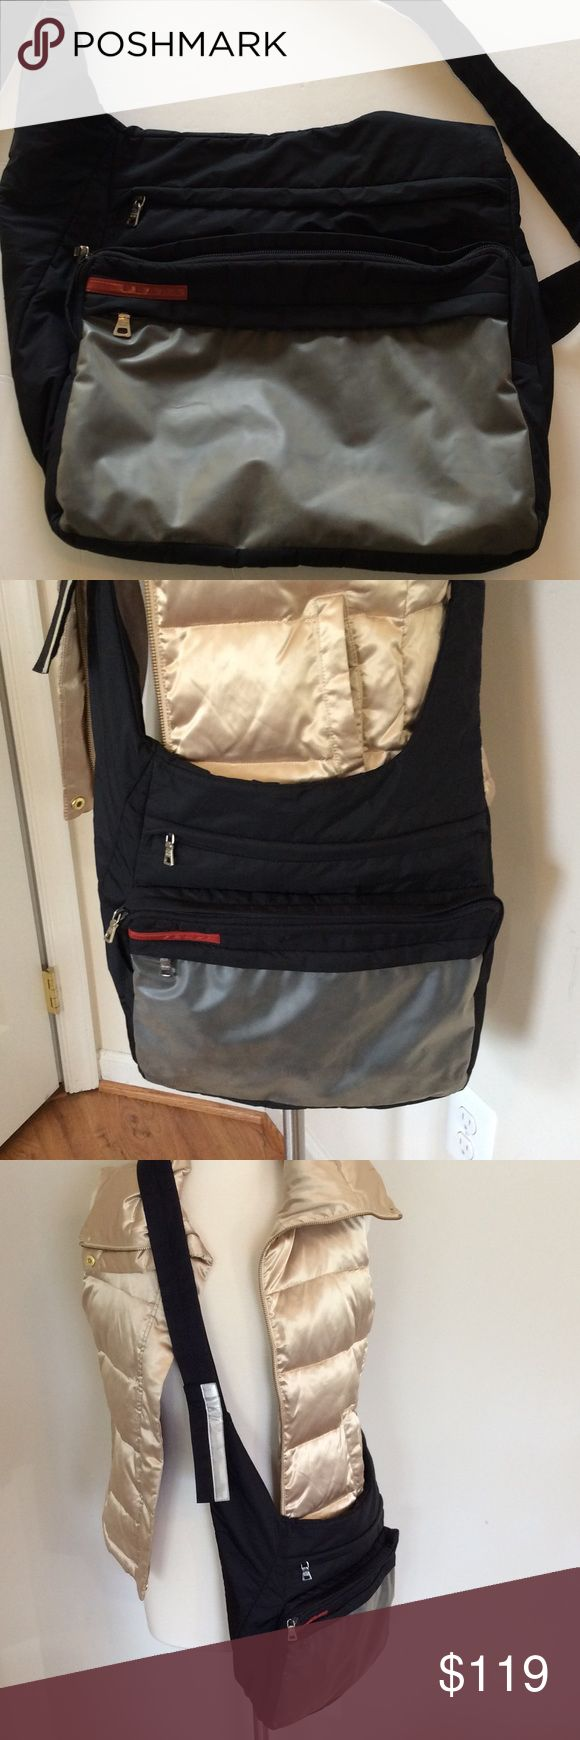 Prada Messenger Bag | Excellent Condition Authentic, lightweight, hip bag. Great quality at a great price. Prada Bags Crossbody Bags